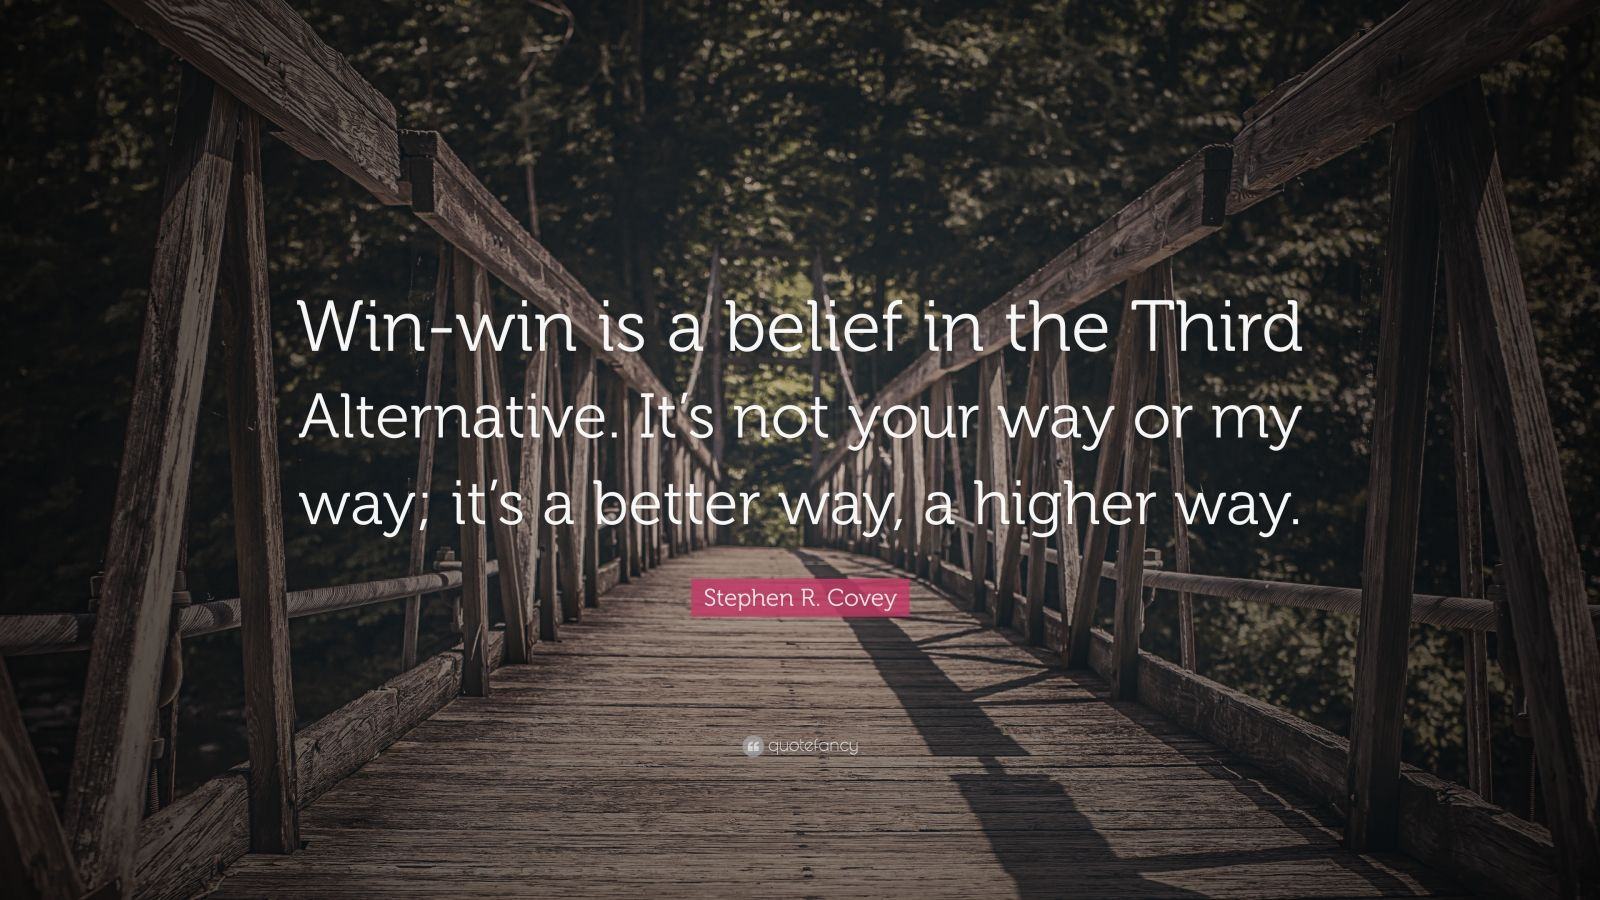 """Stephen R. Covey Quote: """"Win-win is a belief in the Third Alternative. It's not your way or my way; it's a better way, a higher way."""""""